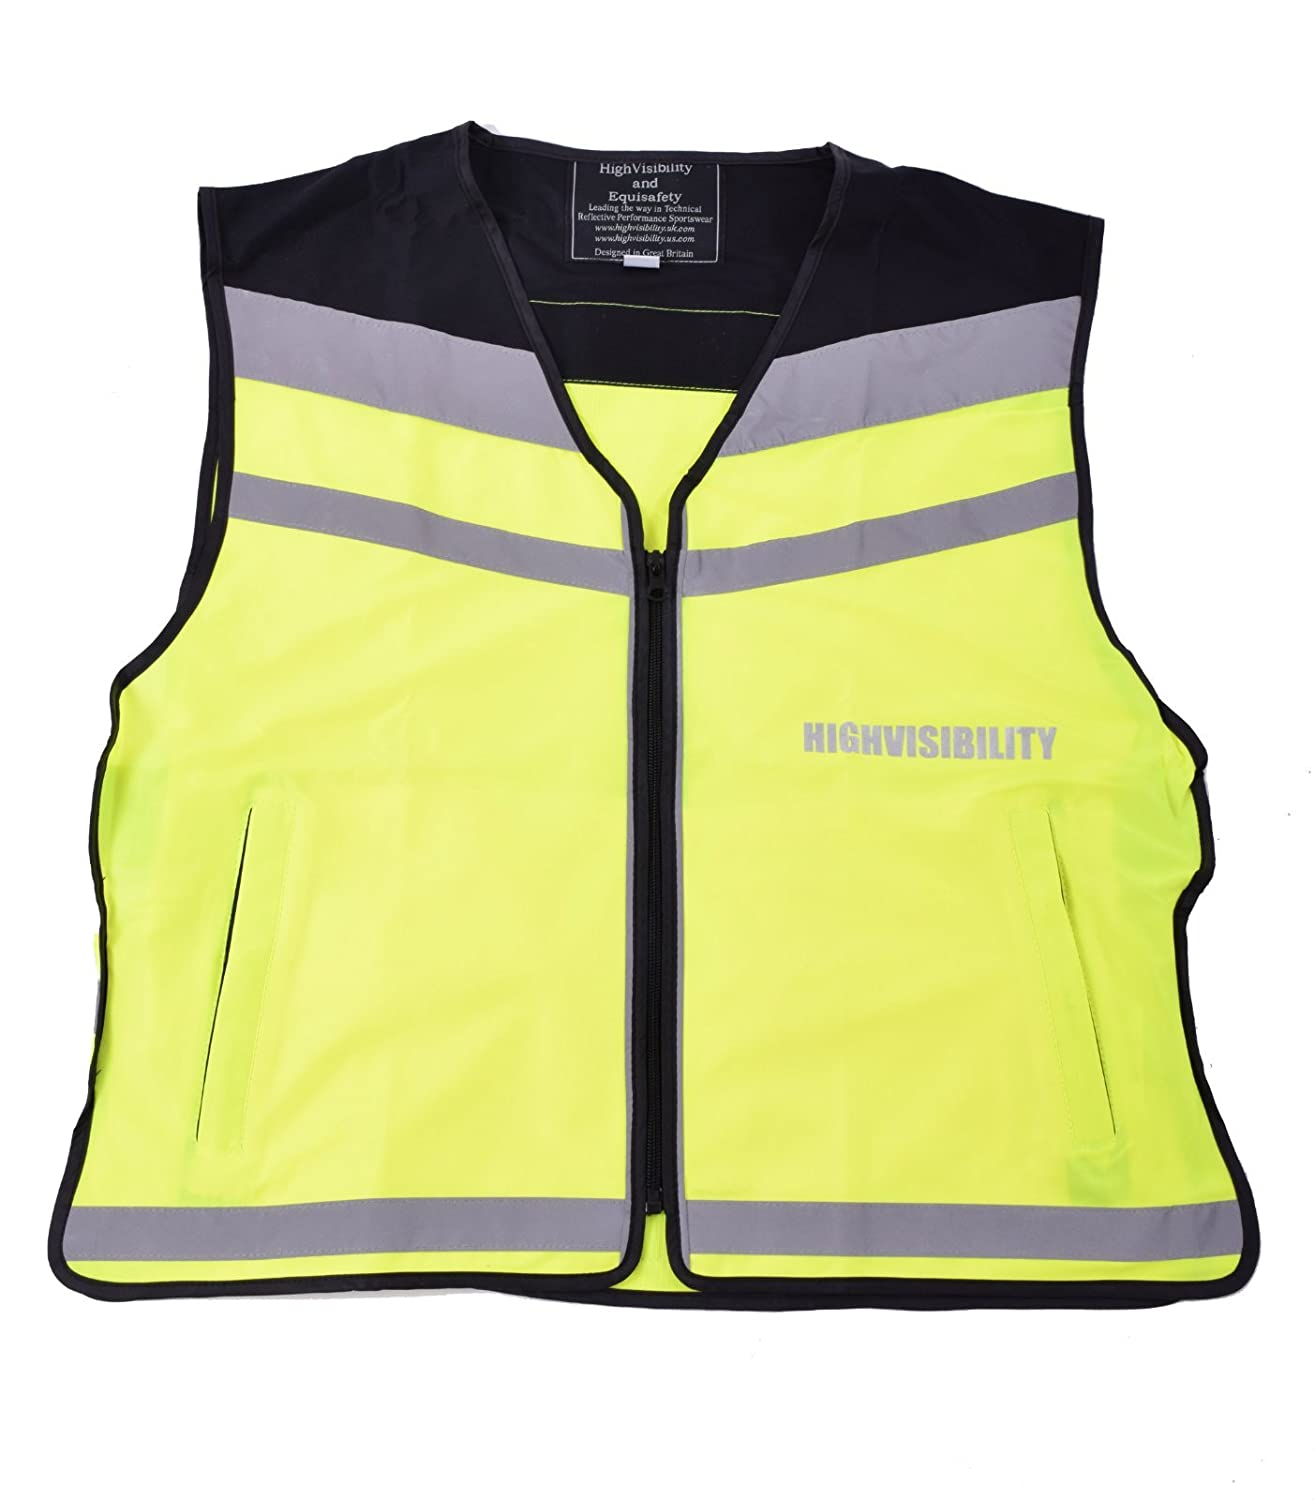 highvisibility.uk.com Ladies Equisafety HiViz Air Waistcoat Reflective Safety Cycle Horse Riding XL